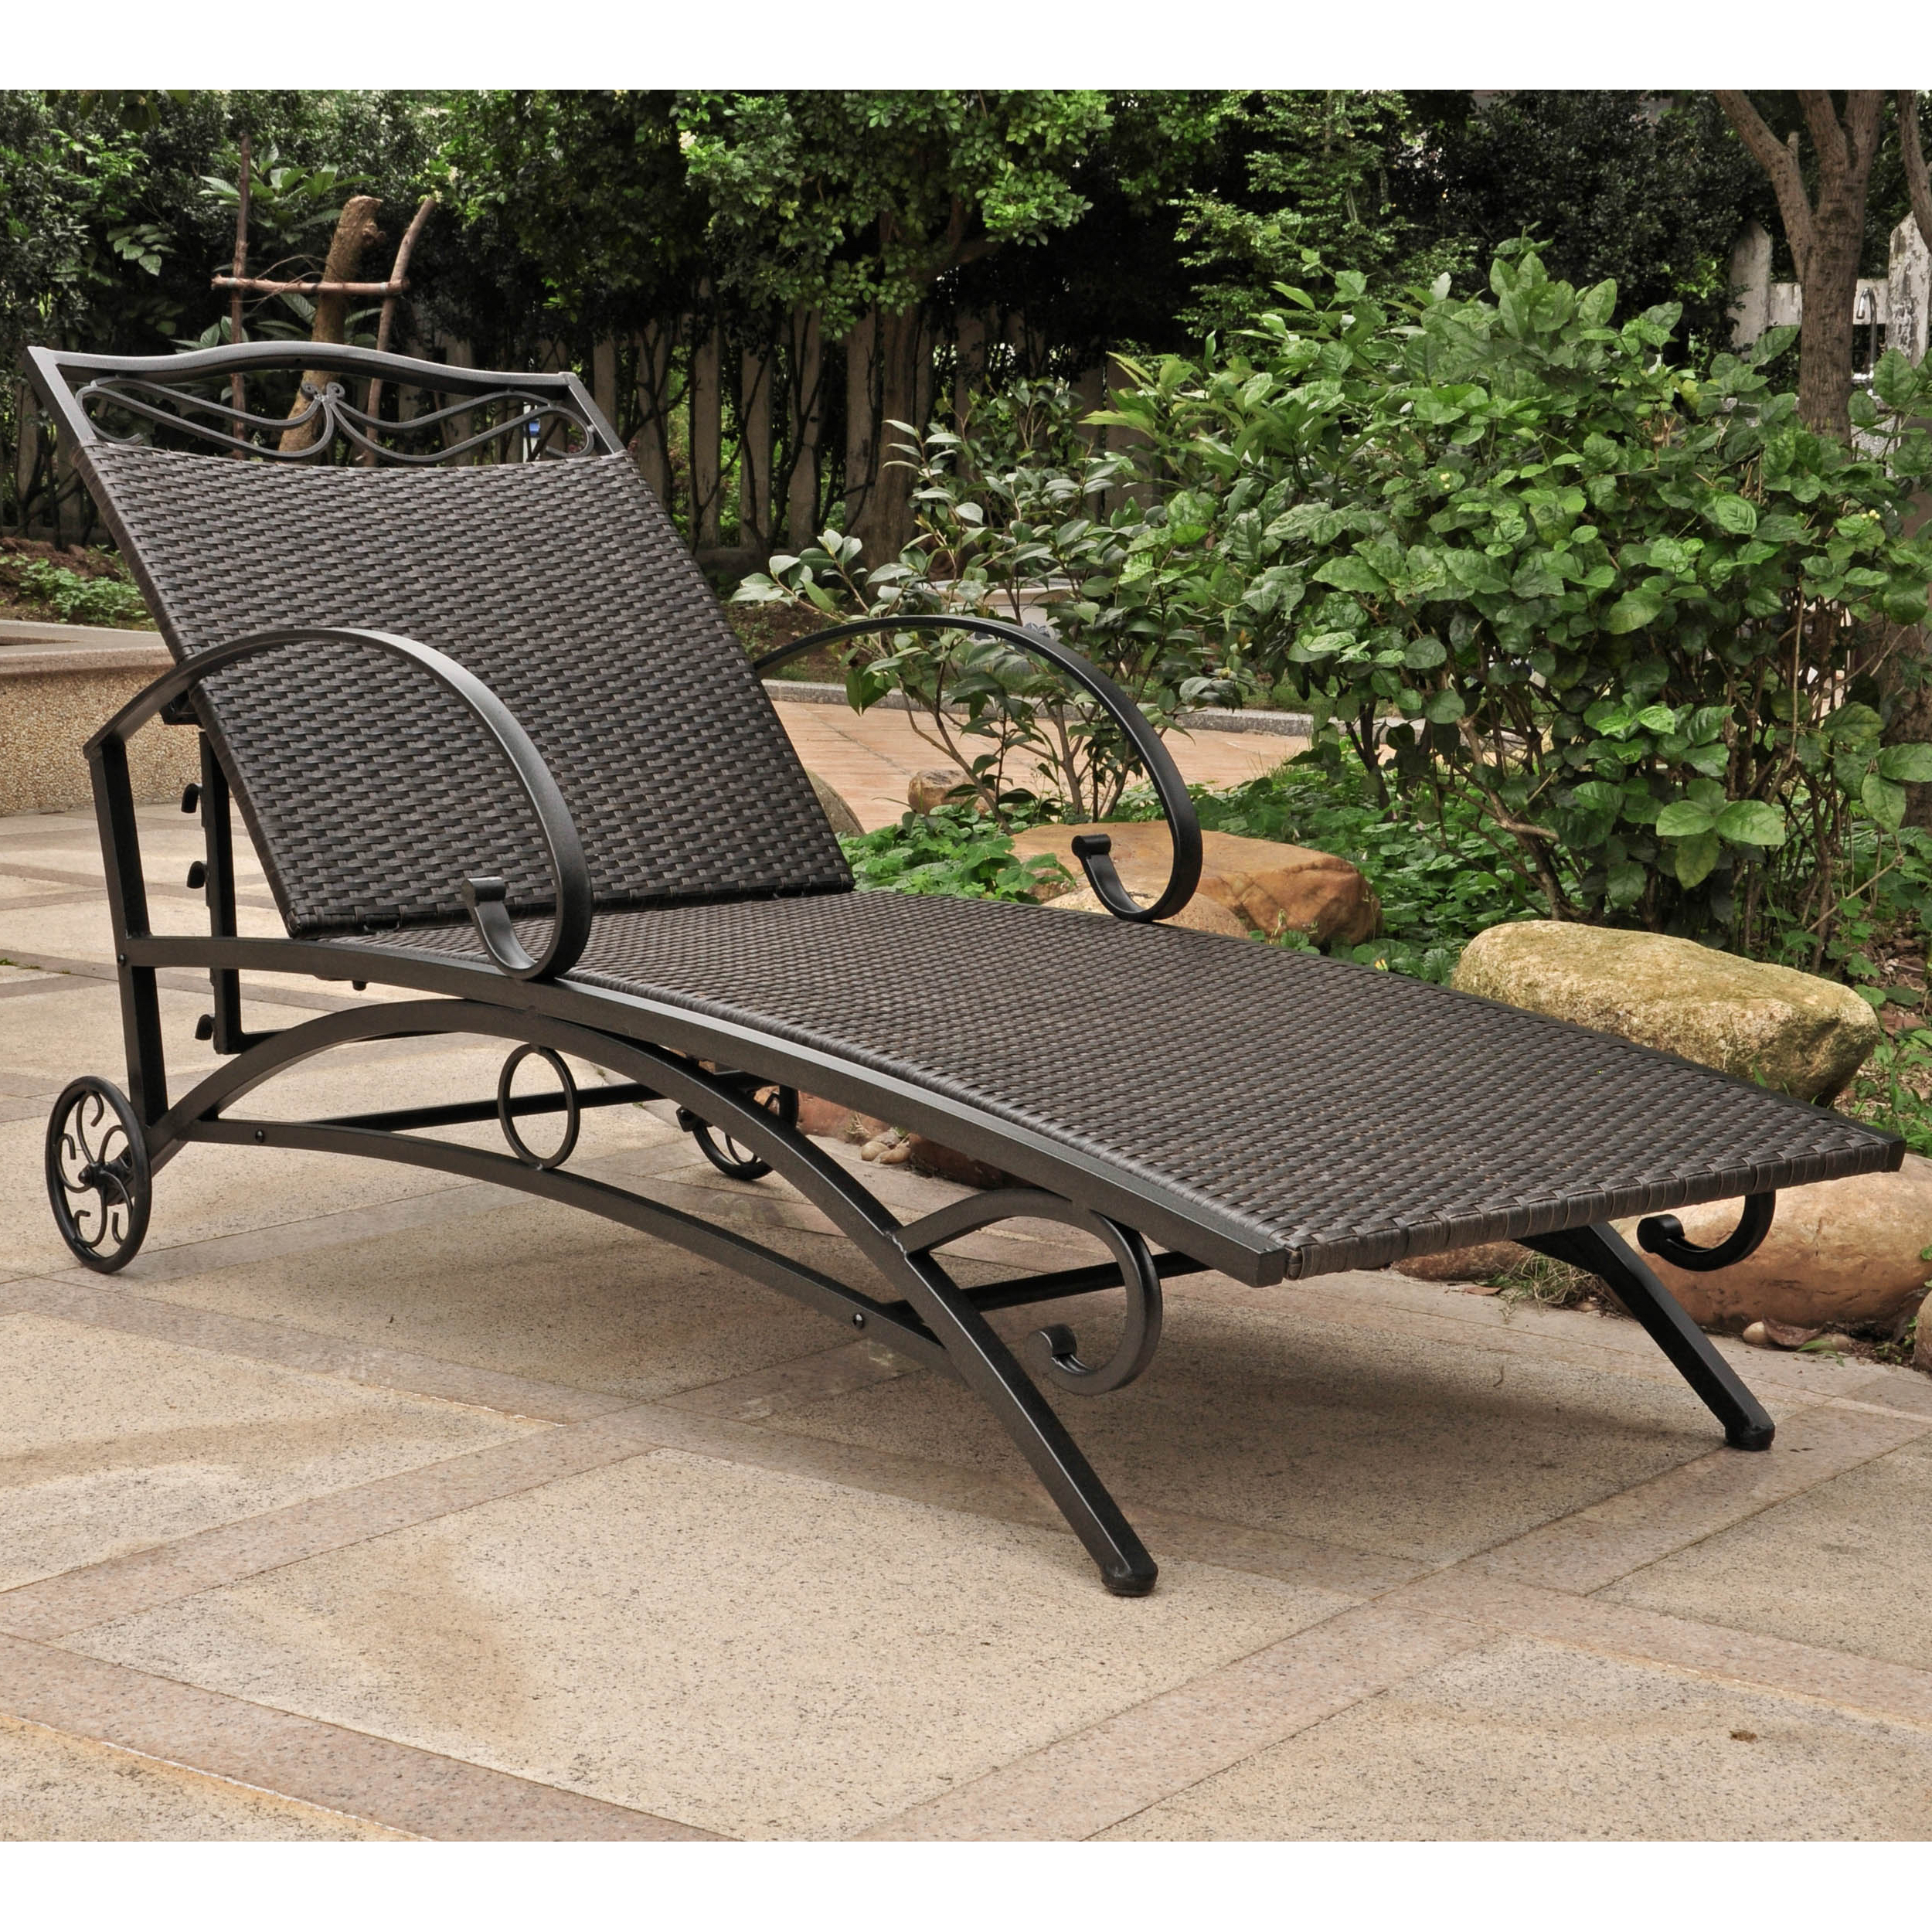 2019 International Caravan Valencia Resin Wicker/ Steel Multi Position Chaise  Lounge Regarding Resin Wicker Multi Position Chaises (View 1 of 25)